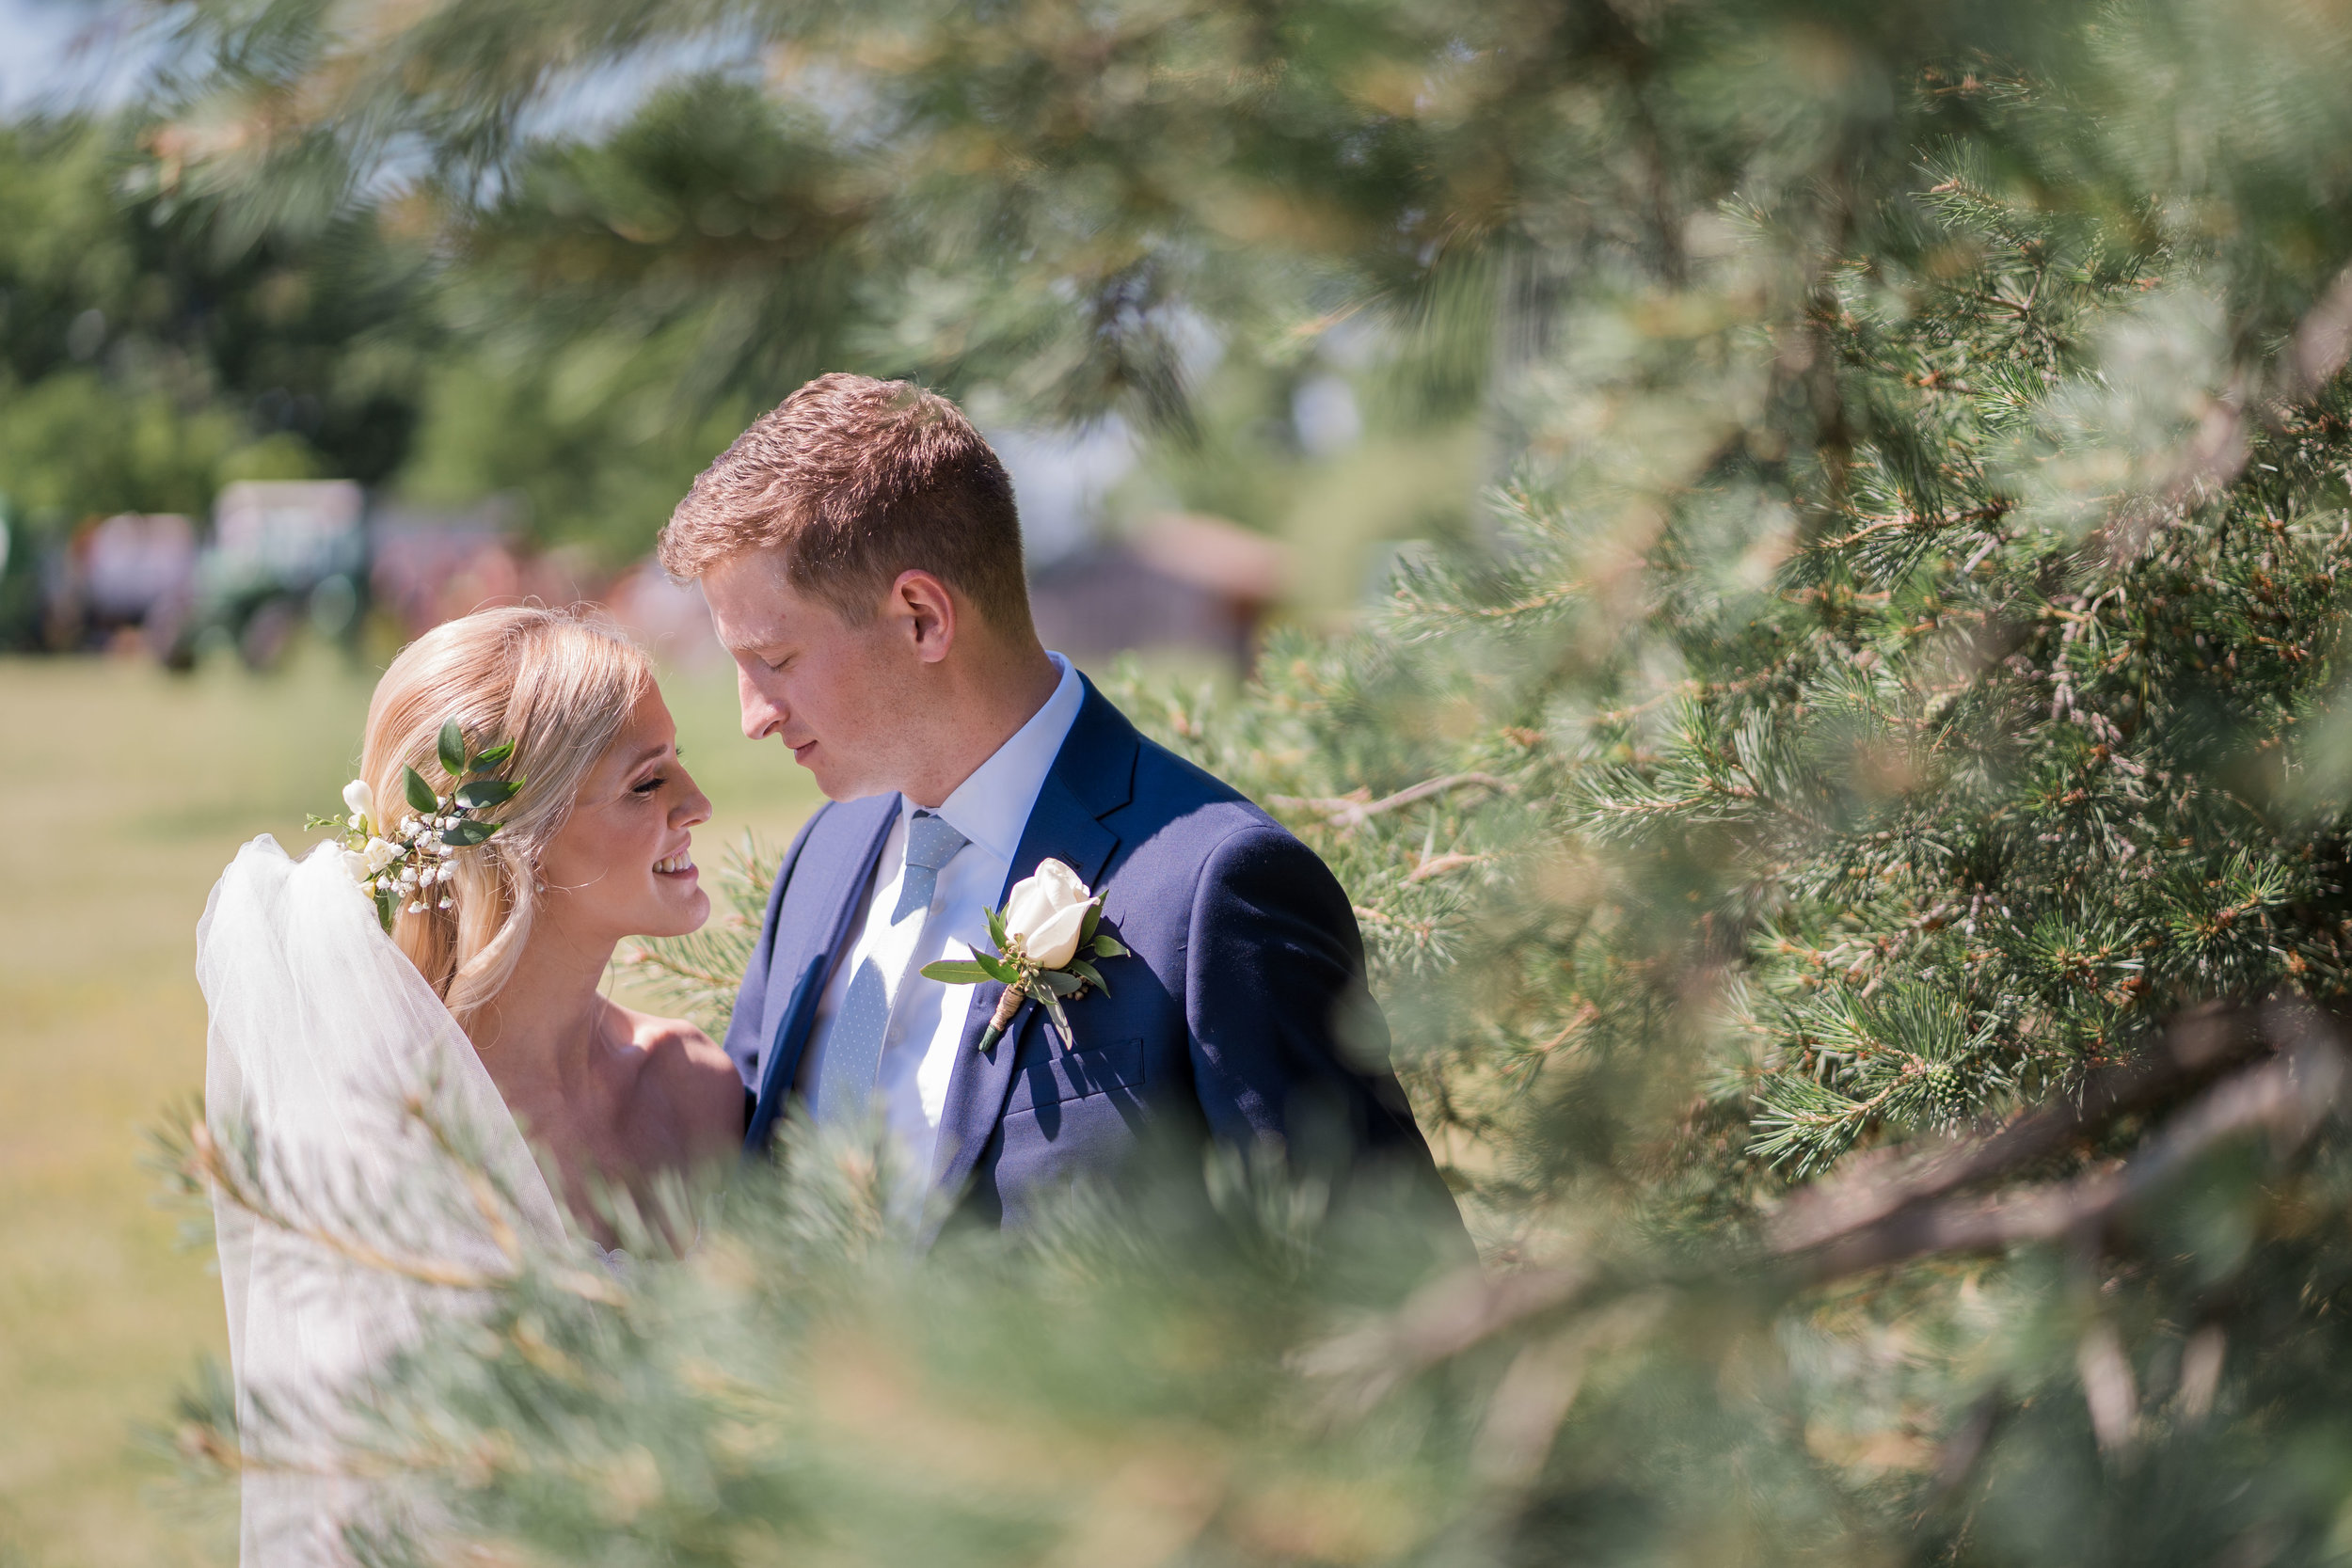 Wedding Photography at Wagner Vineyards Ginny Lee Cafe Finger Lakes by Stefan Ludwig Photography-39.jpg